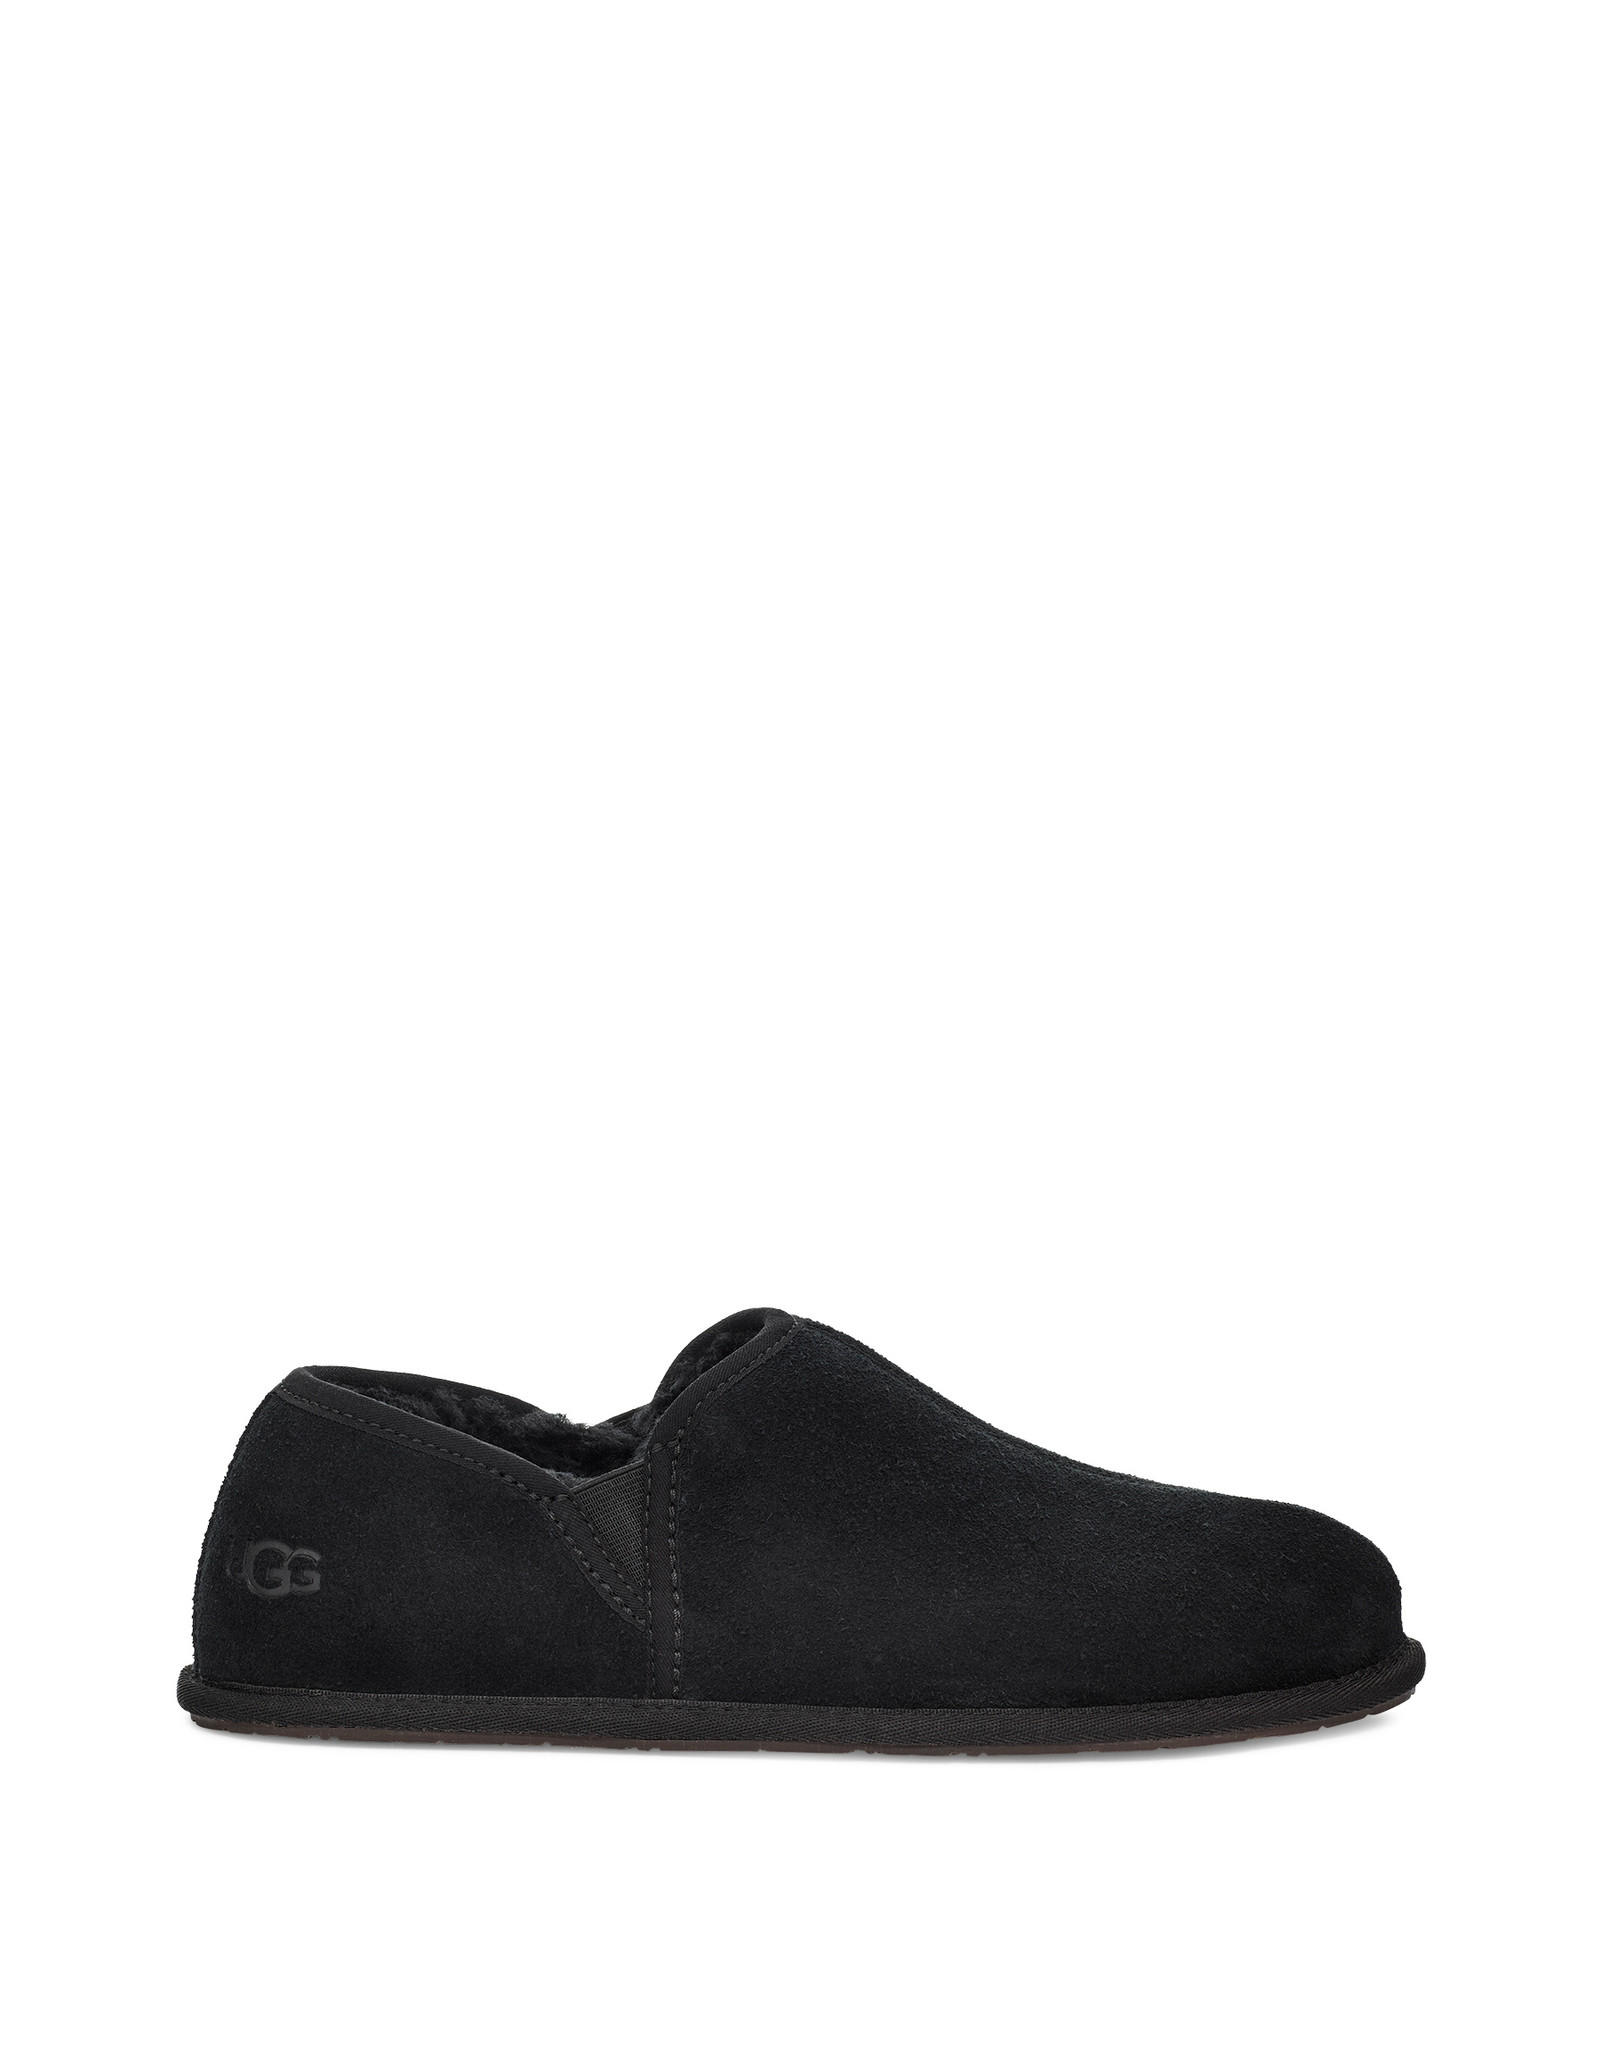 UGG MEN'S SCUFF ROMEO II SLIPPER-BLACK